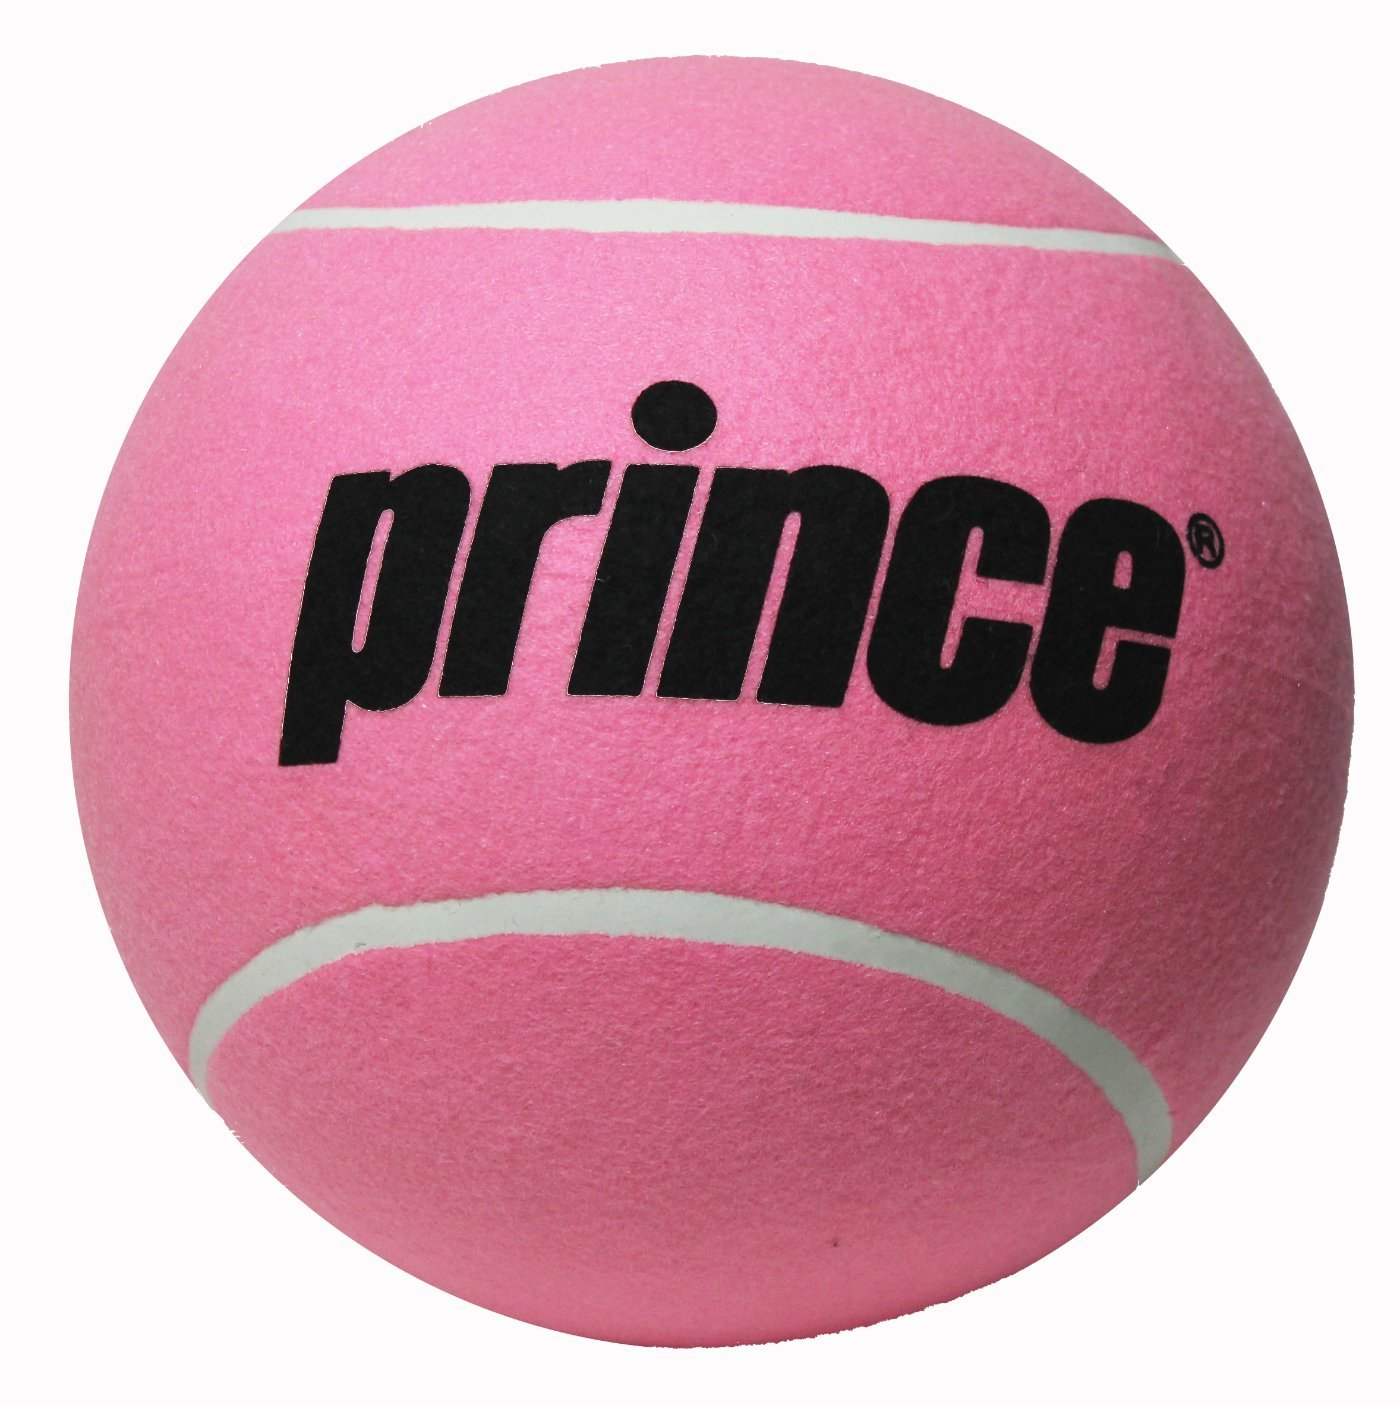 "PRINCE JUMBO TENNIS BALL NEW WITHOUT BOX DEFLATED 9"" (PINK ..."